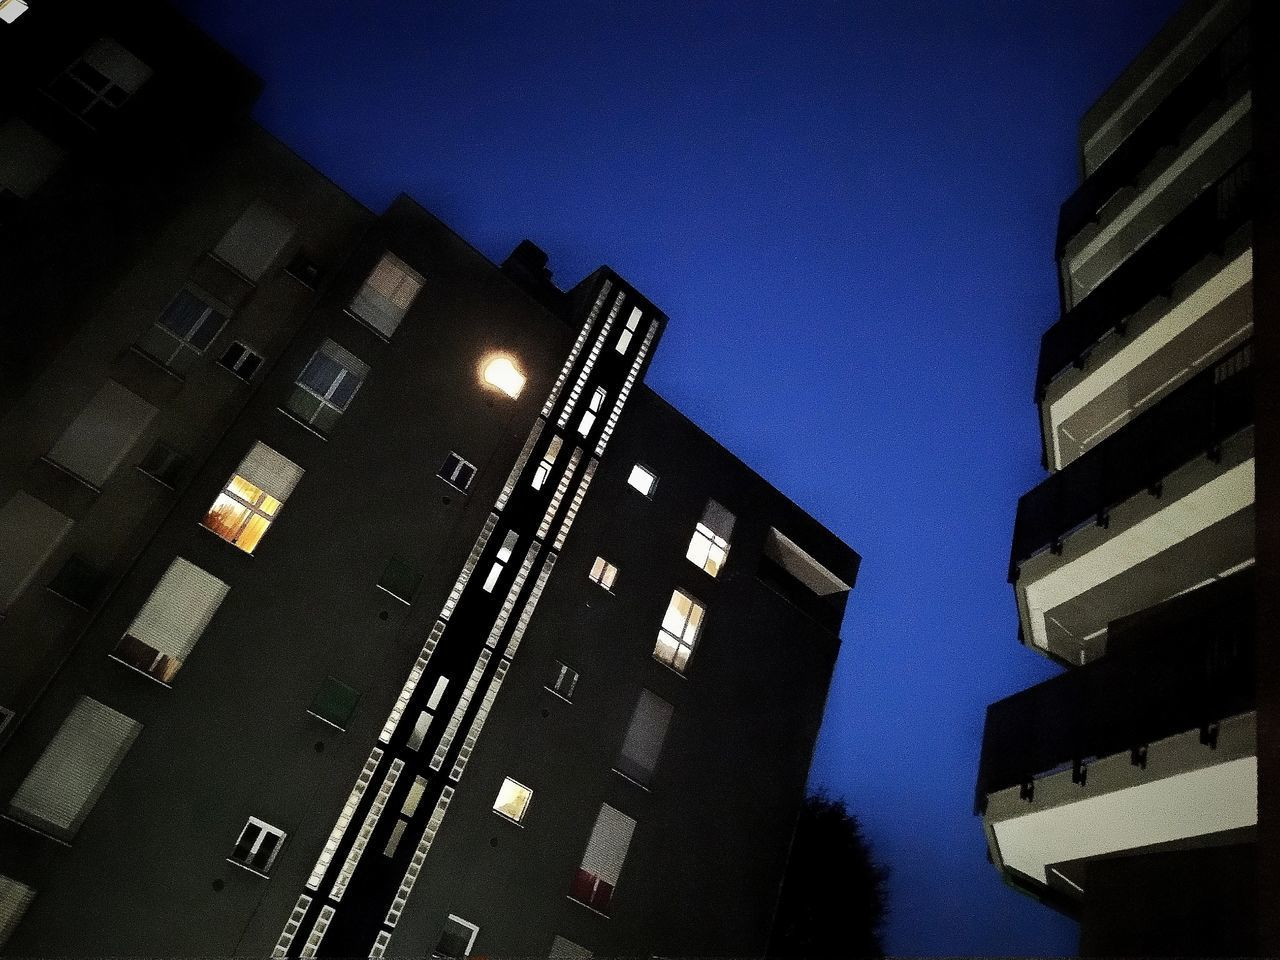 LOW ANGLE VIEW OF ILLUMINATED BUILDINGS AGAINST CLEAR SKY AT DUSK